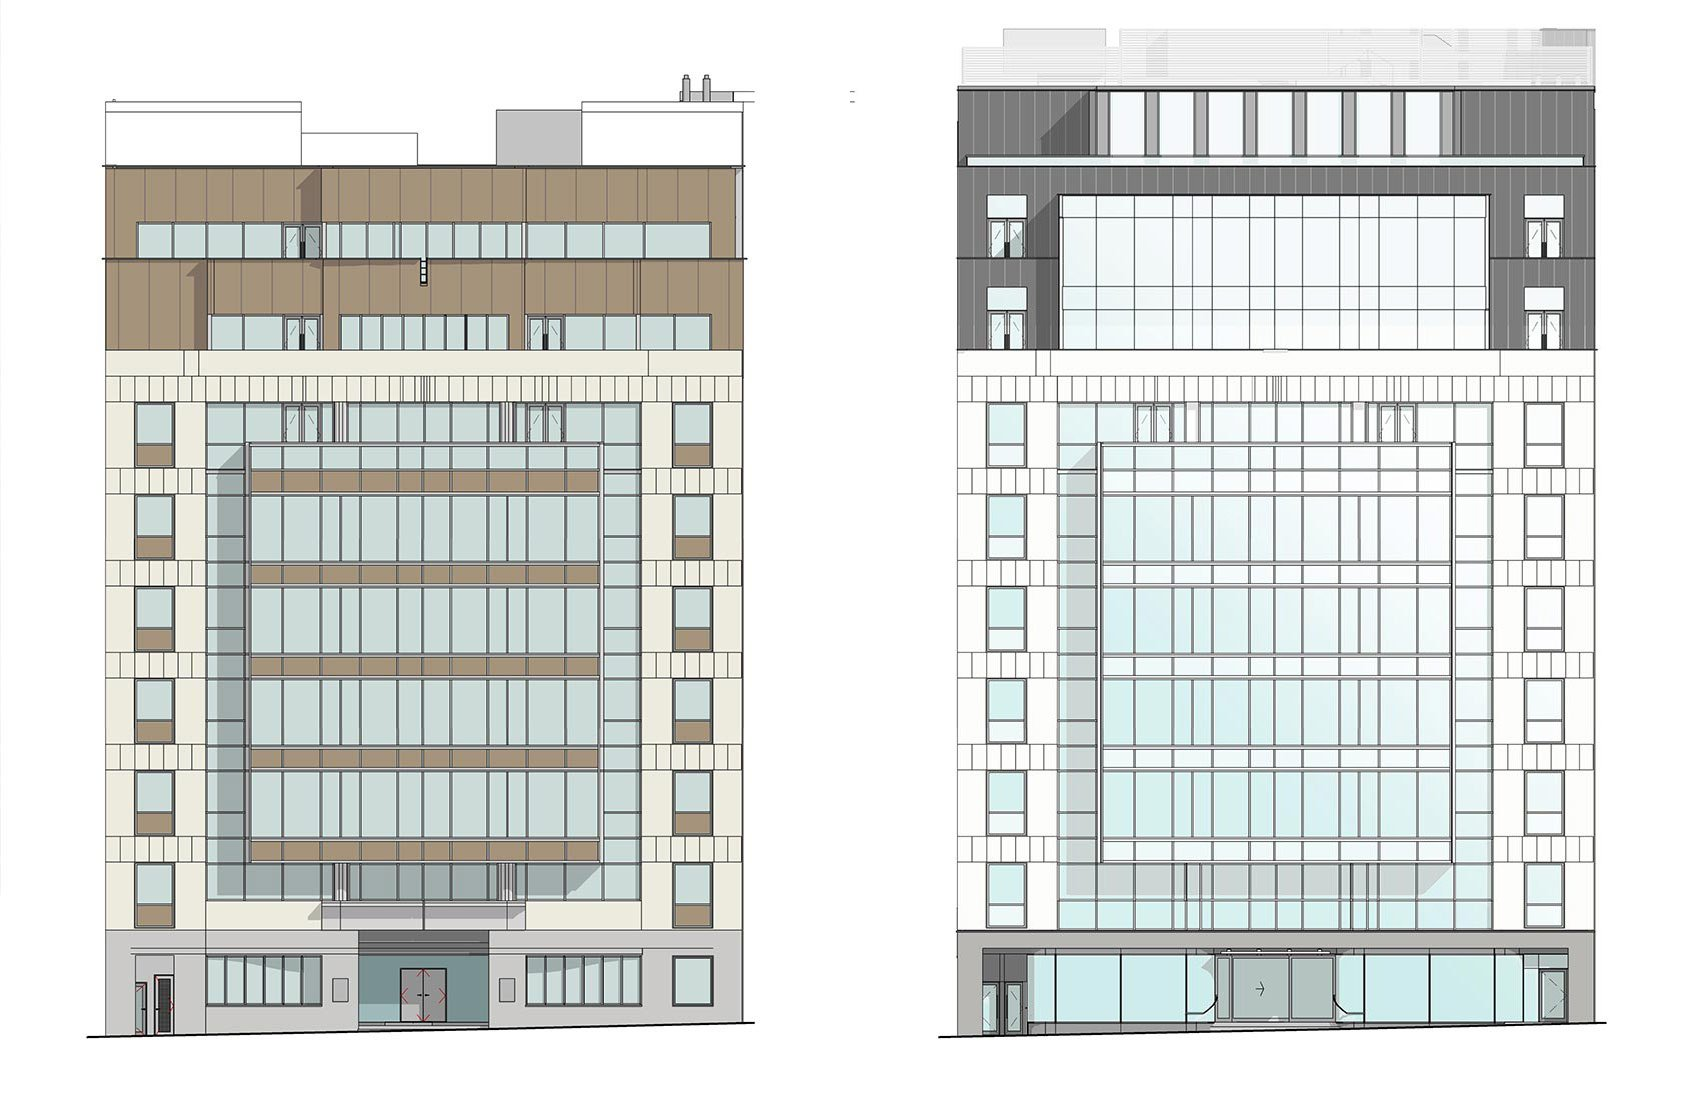 20 Saint Andrews House, Holburn, London, Existing and Proposed Elevation